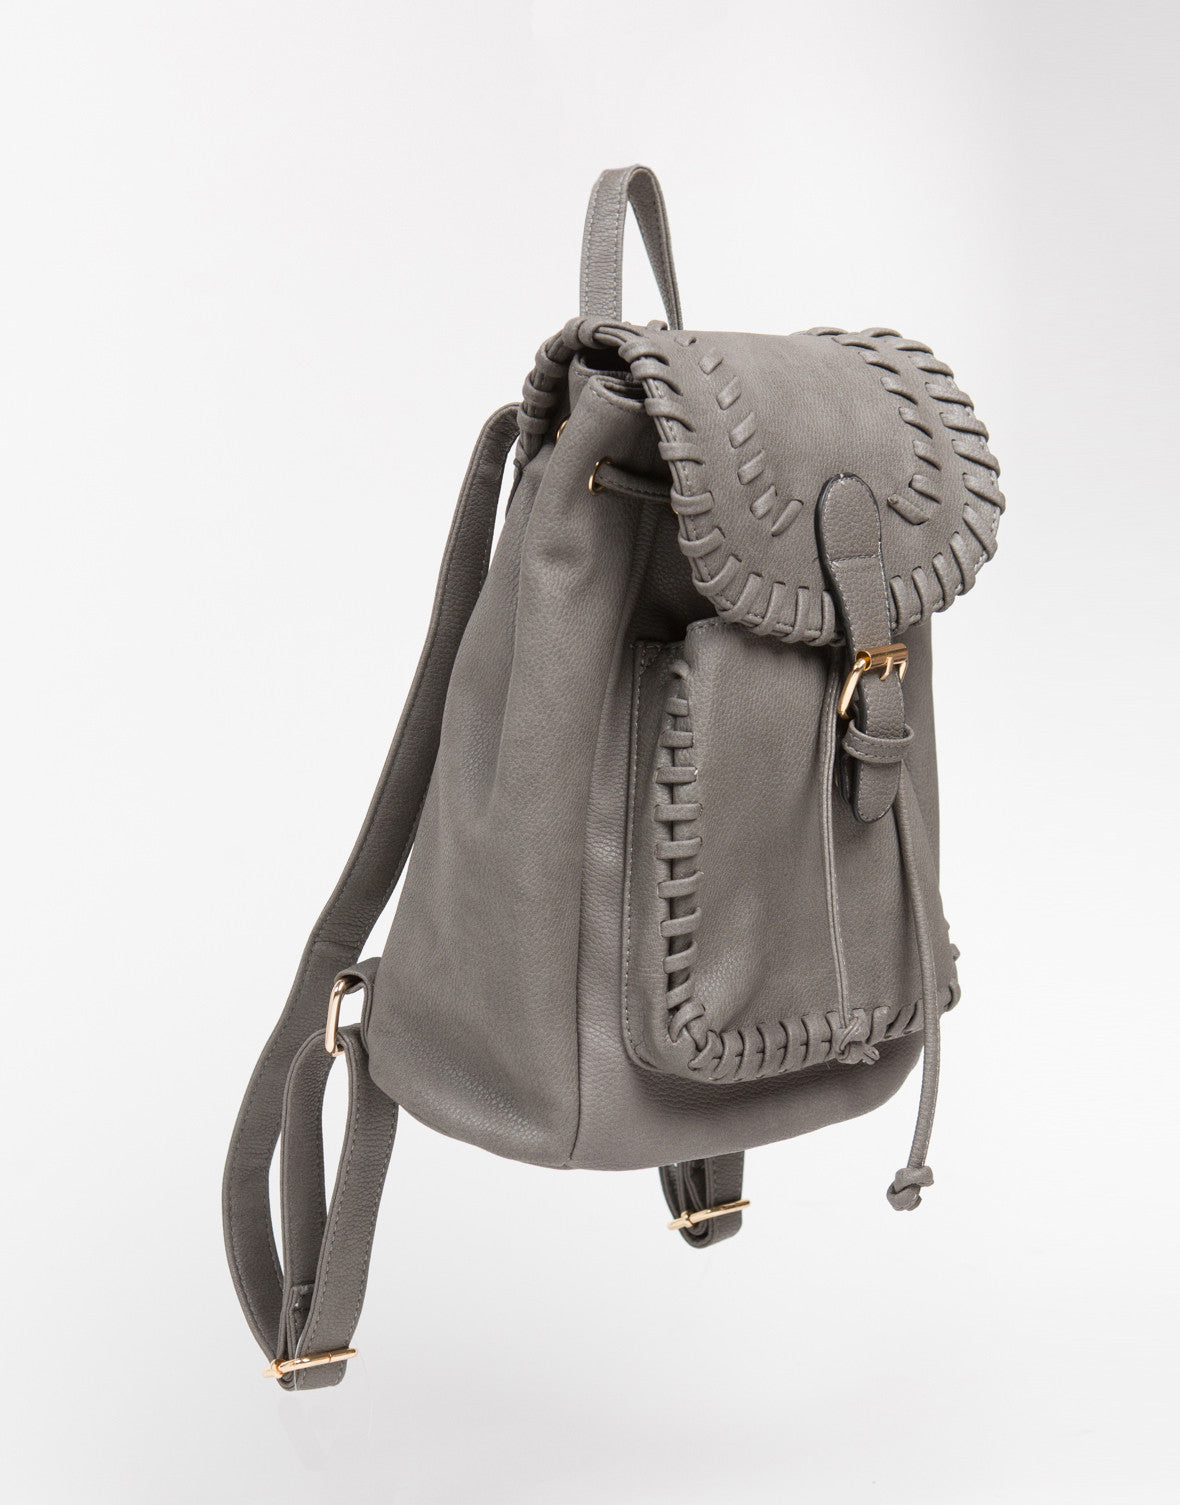 Buckled and Stitched Backpack